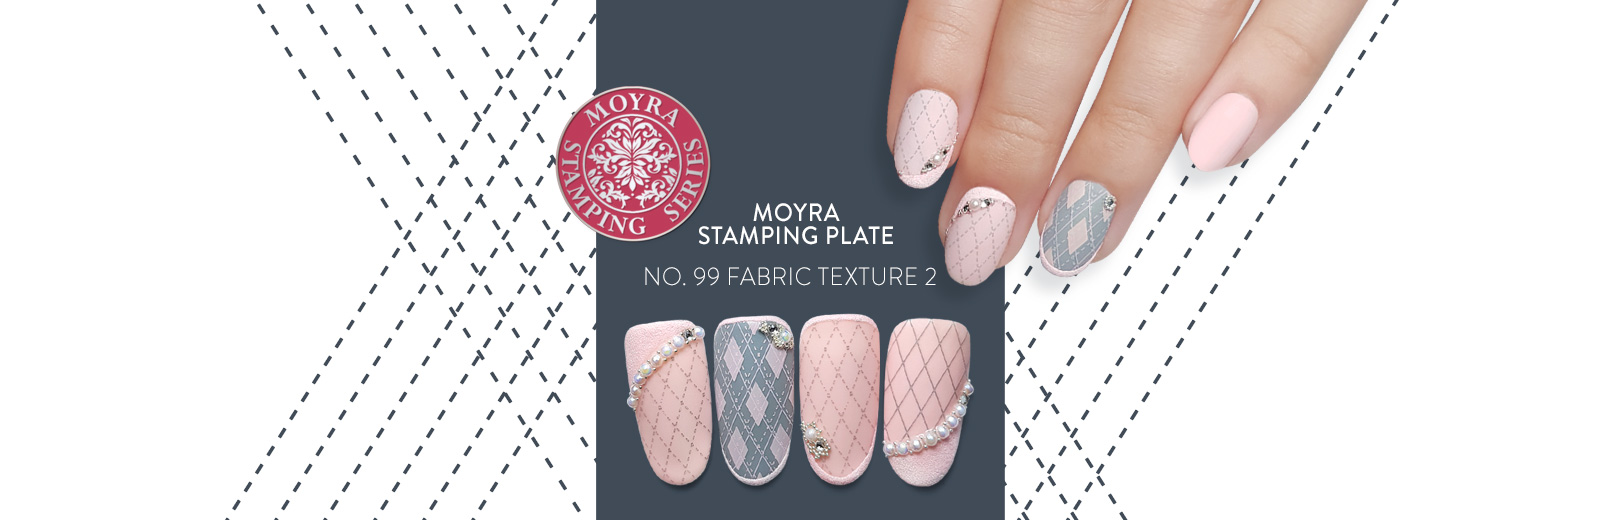 Moyra stamping plate 99 Fabric texture 2